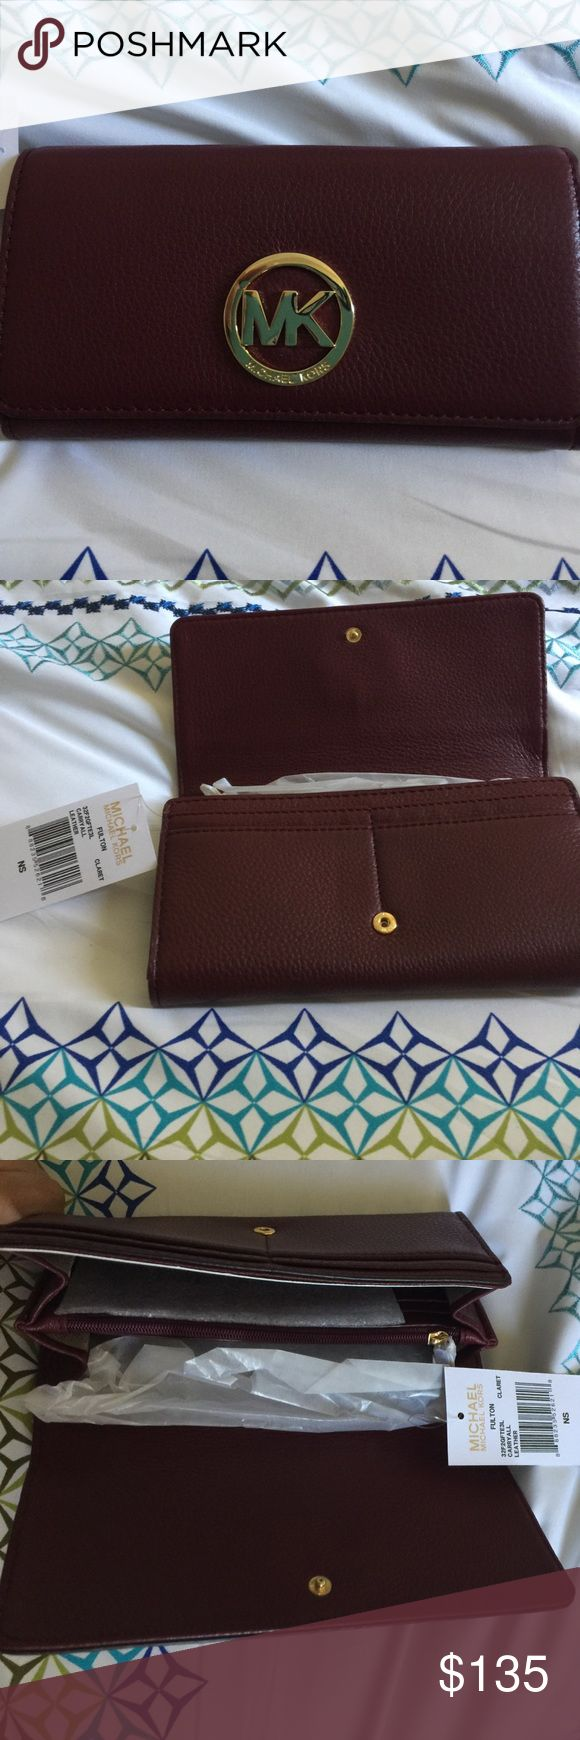 New with Tags Michael Kors Wallet Brand new with Tags Michael Kors Fulton Carryall Leather Wallet. Beautiful claret color. Michael Kors Bags Wallets